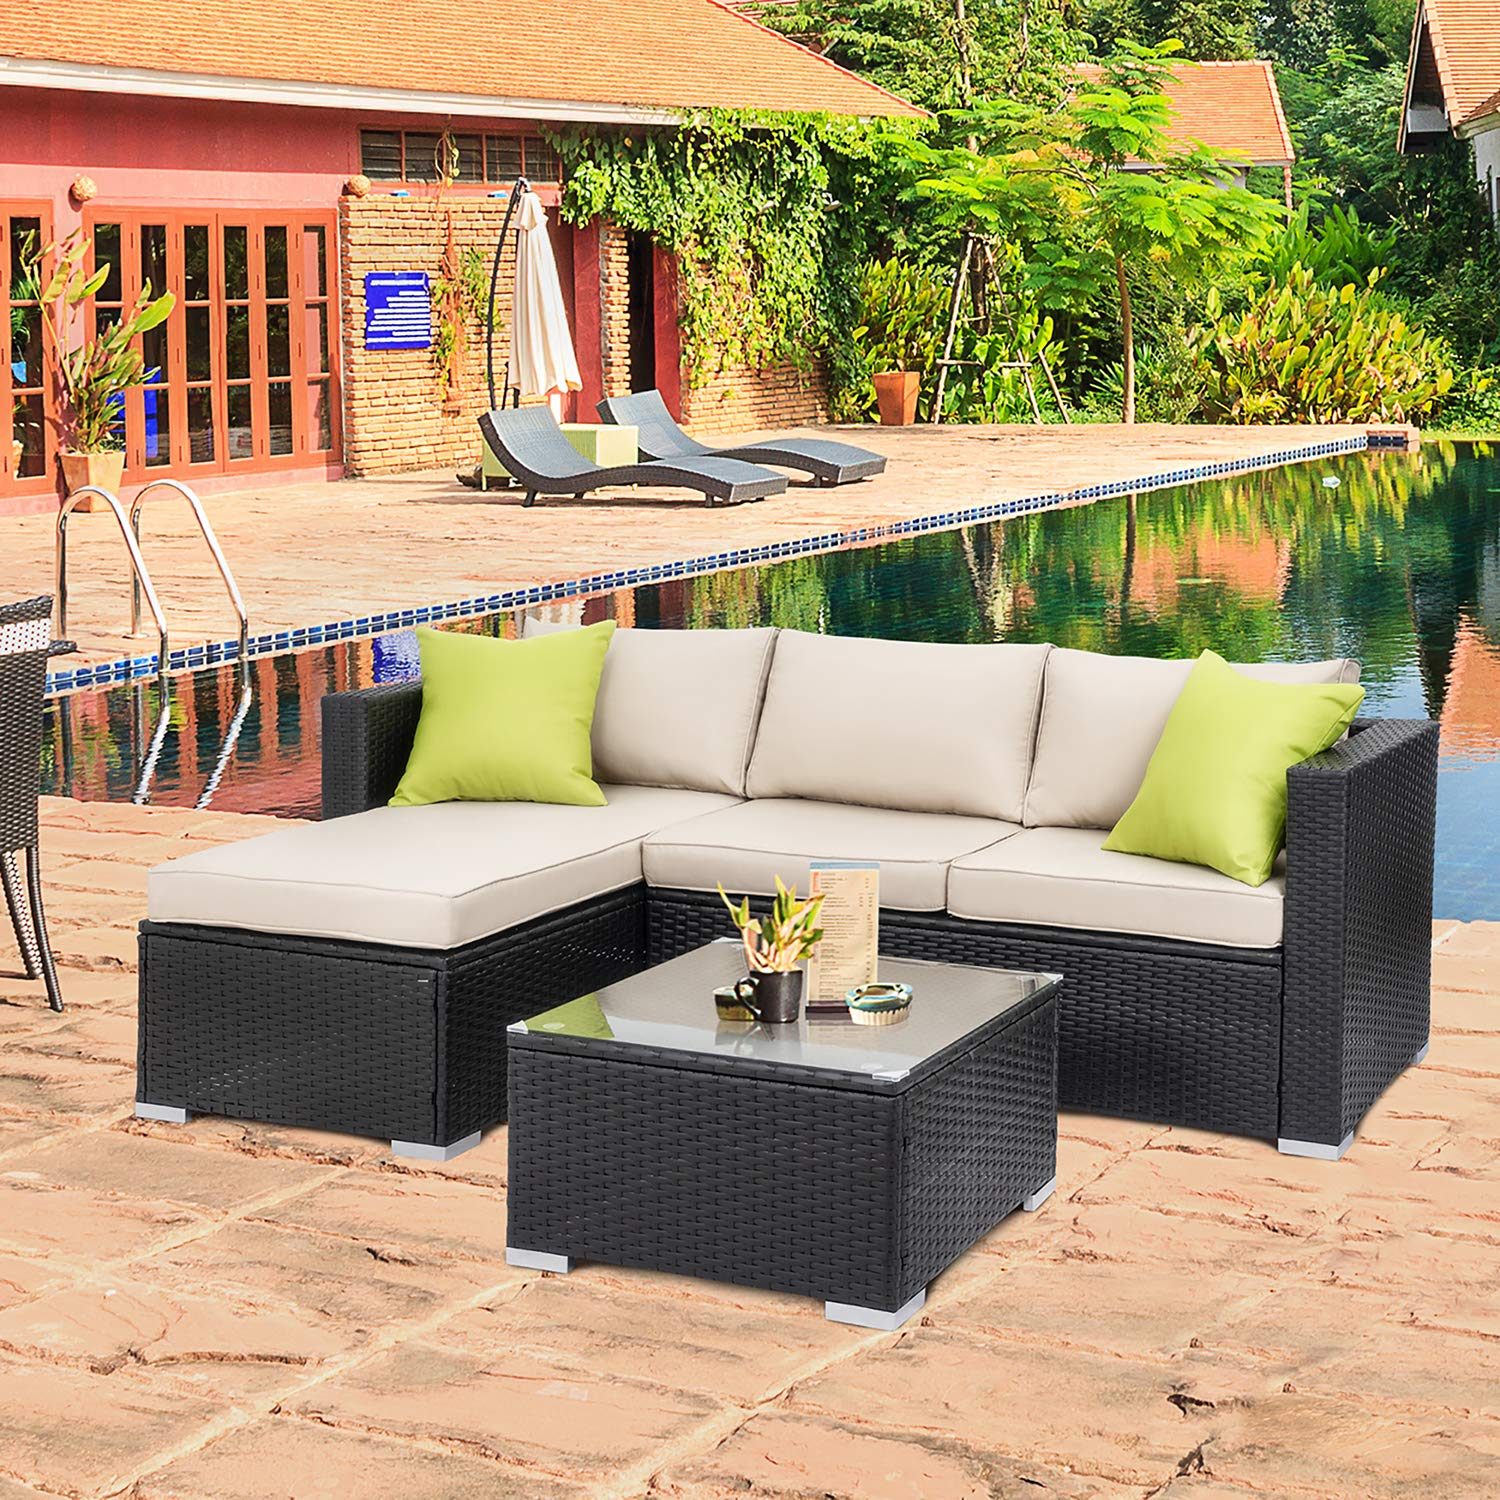 Walsunny Outdoor Rattan Sectional Sofa- Patio Wicker Furniture Set (Khaki) by Walsunny